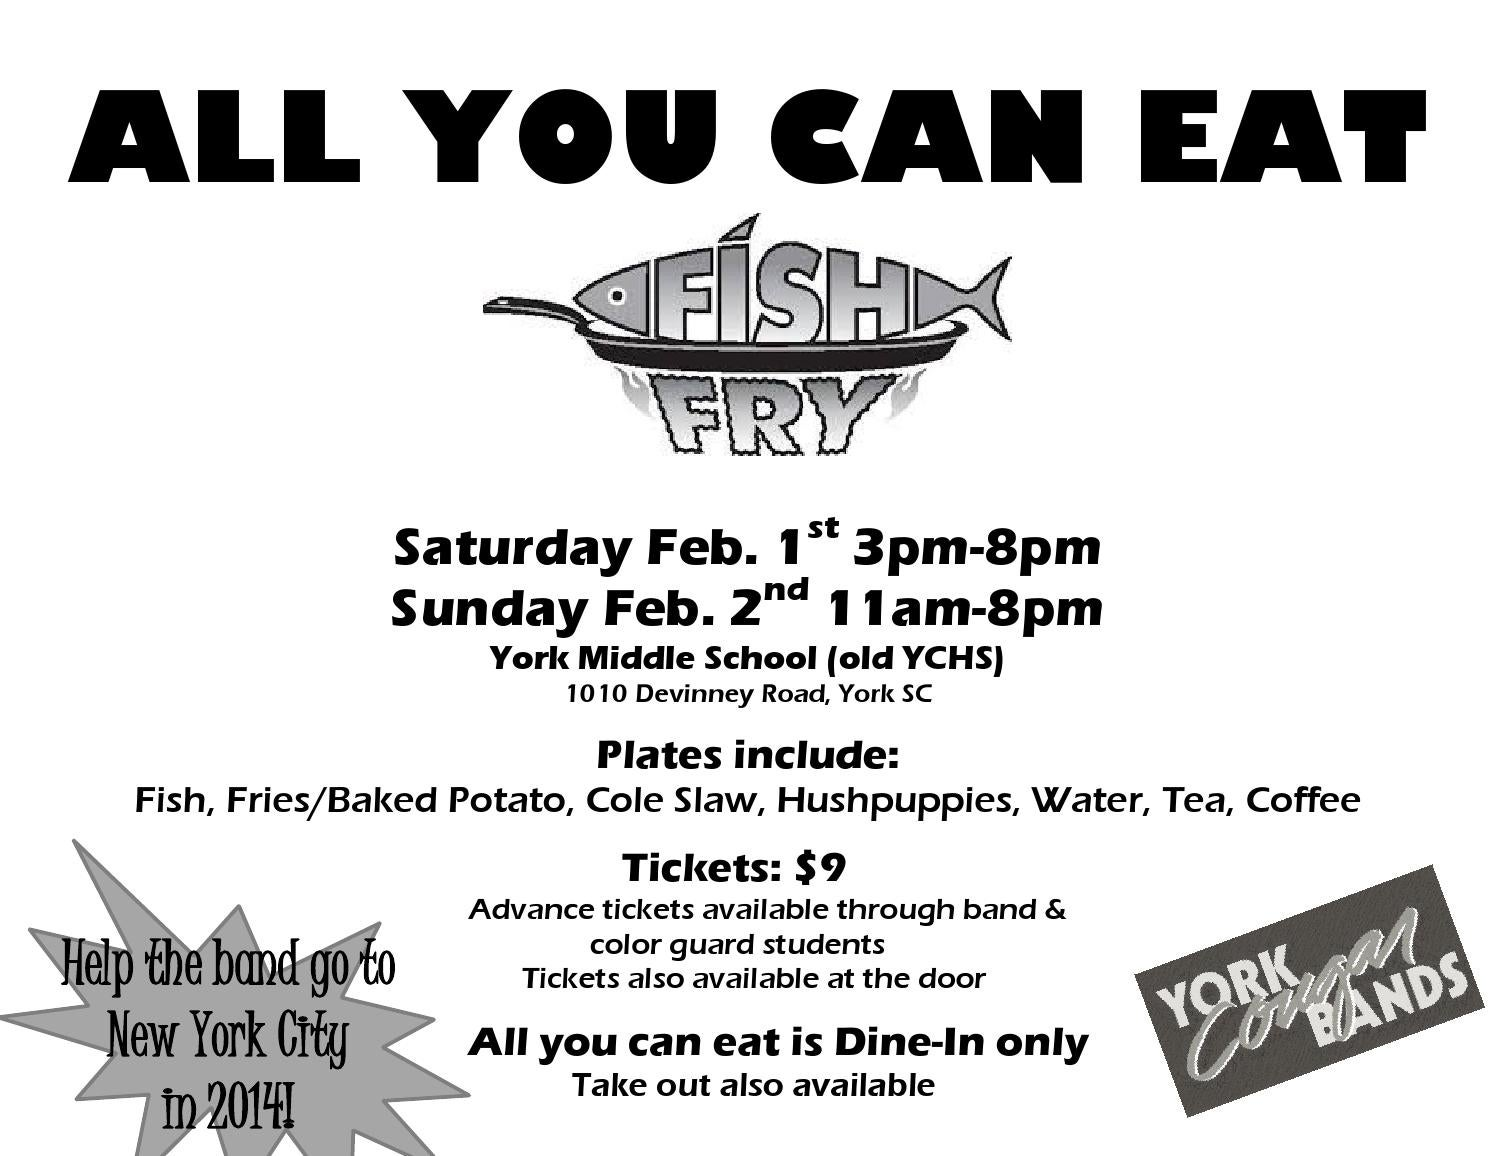 York cougar bands feb fish fry by laura brooks issuu for All you can eat fish fry